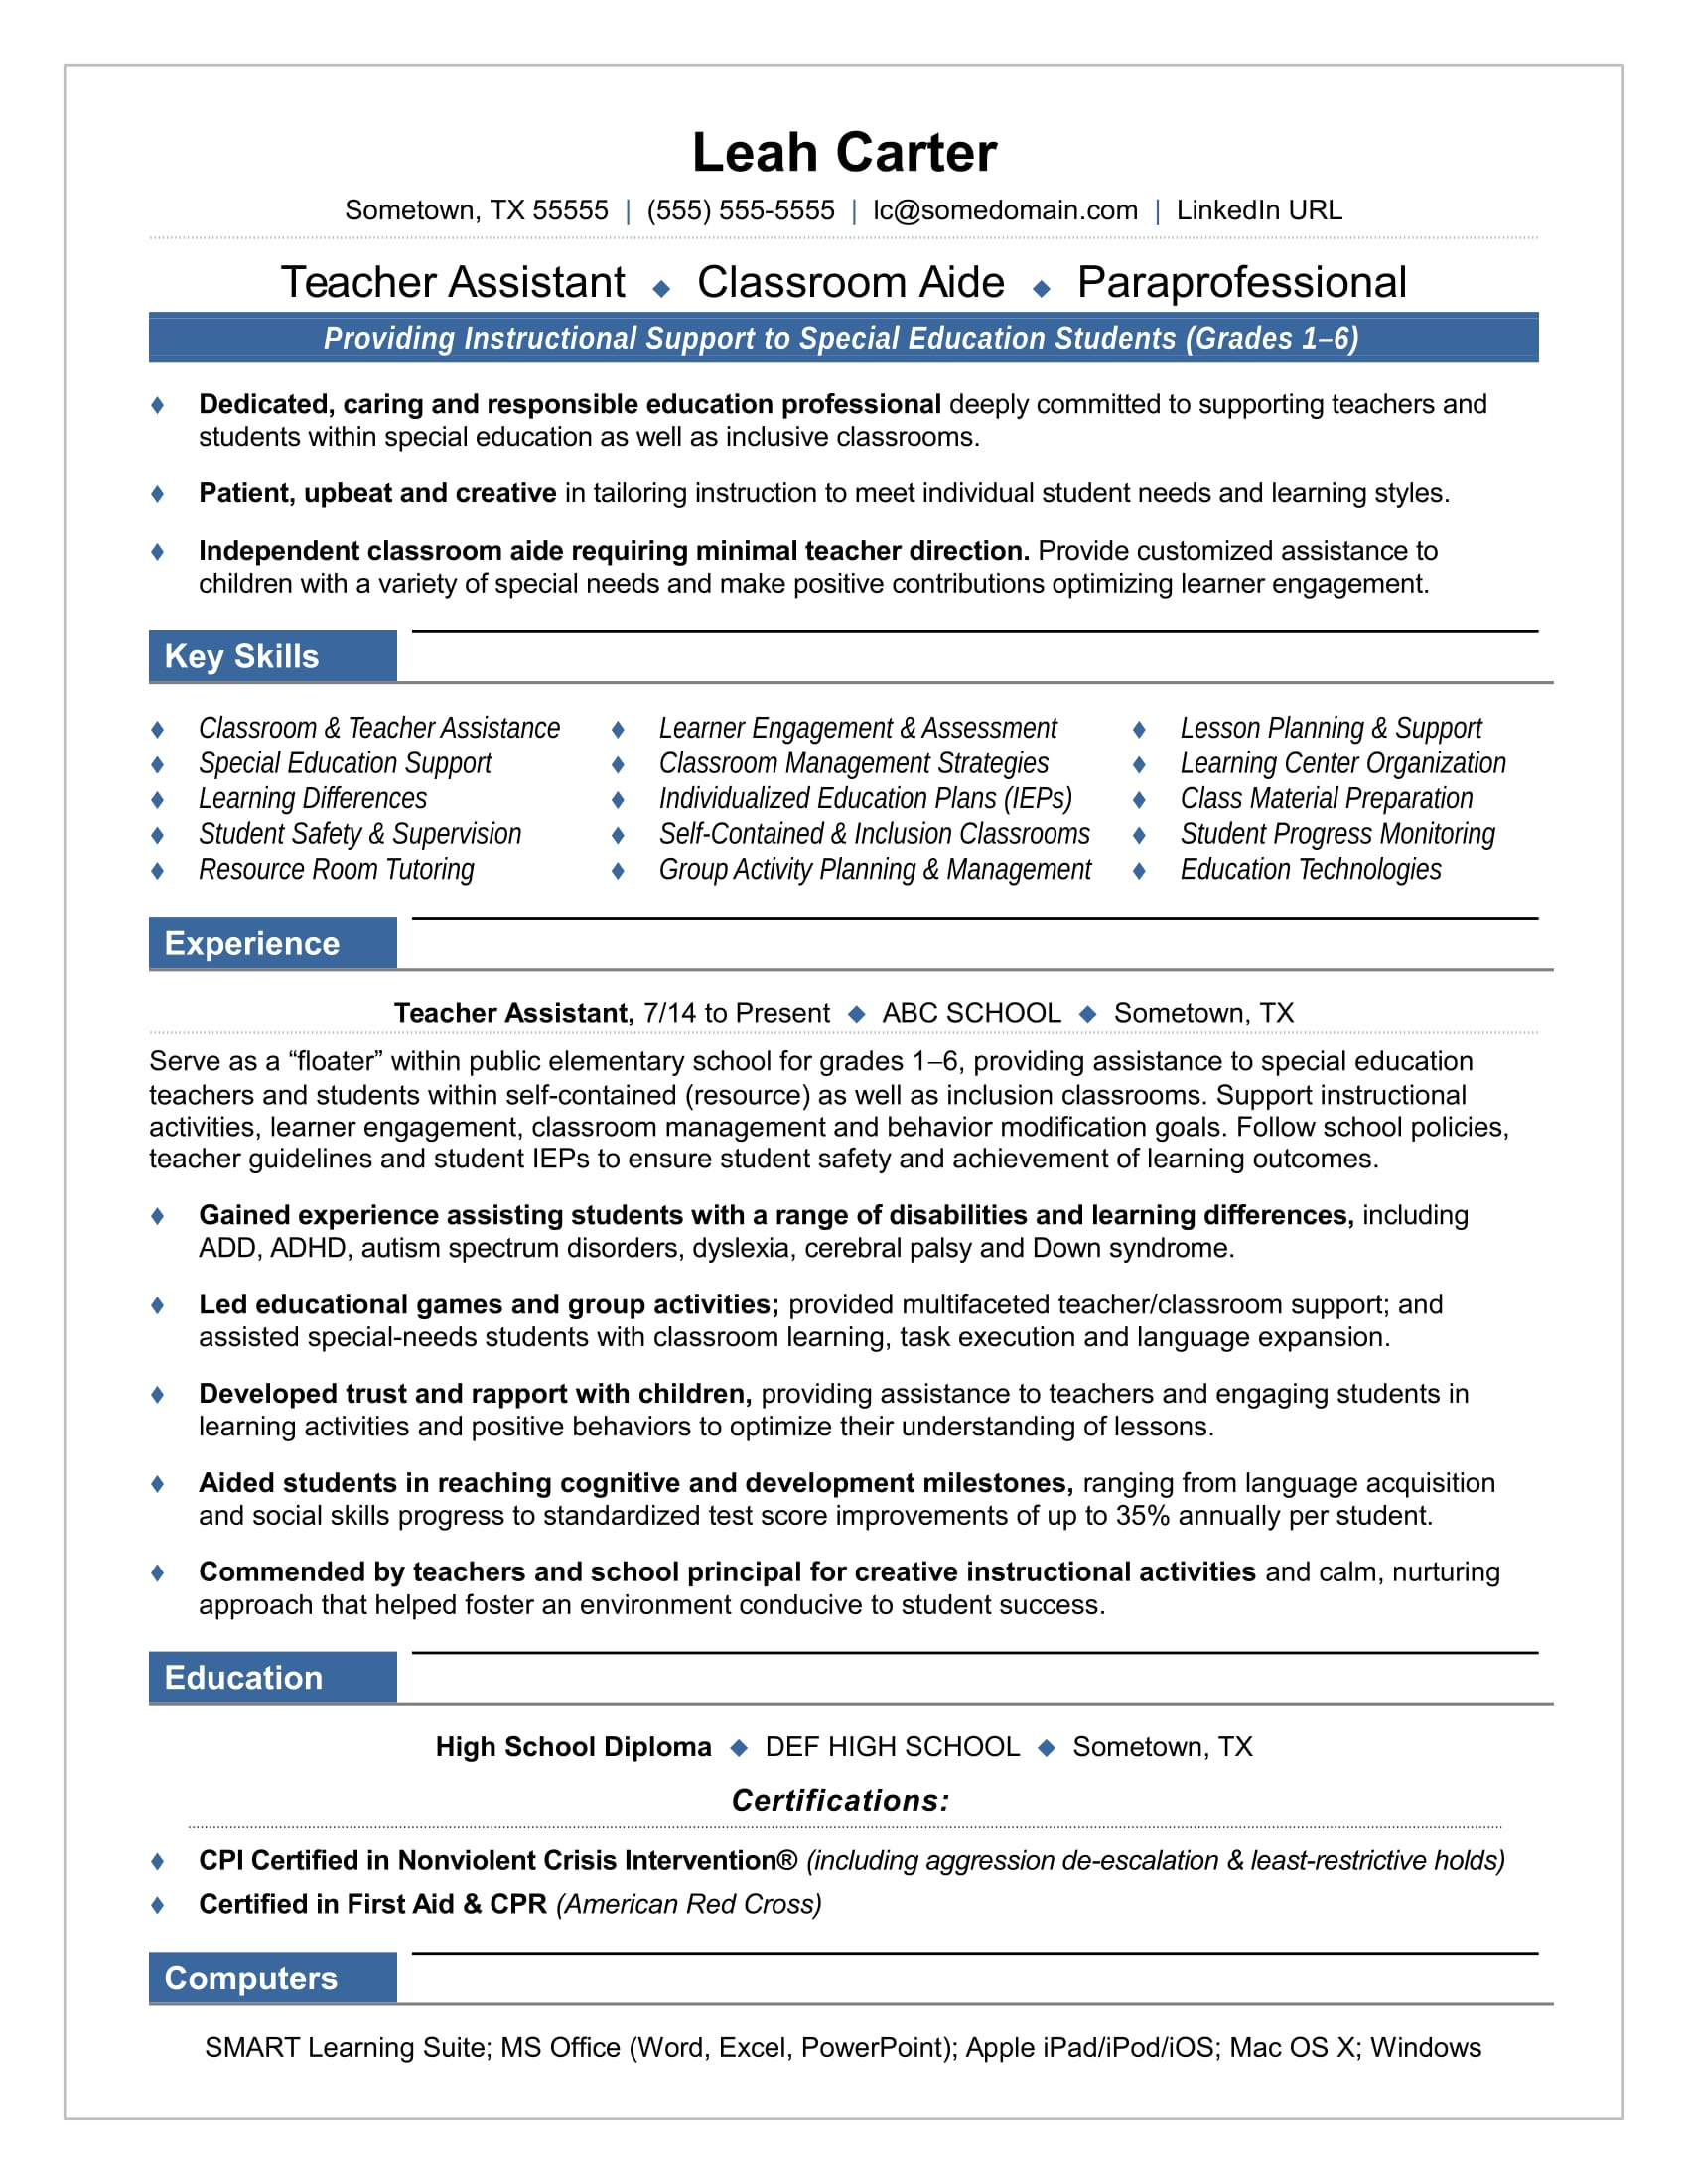 Resume For Assistant Teacher Teacher Assistant Resume Sample Monster